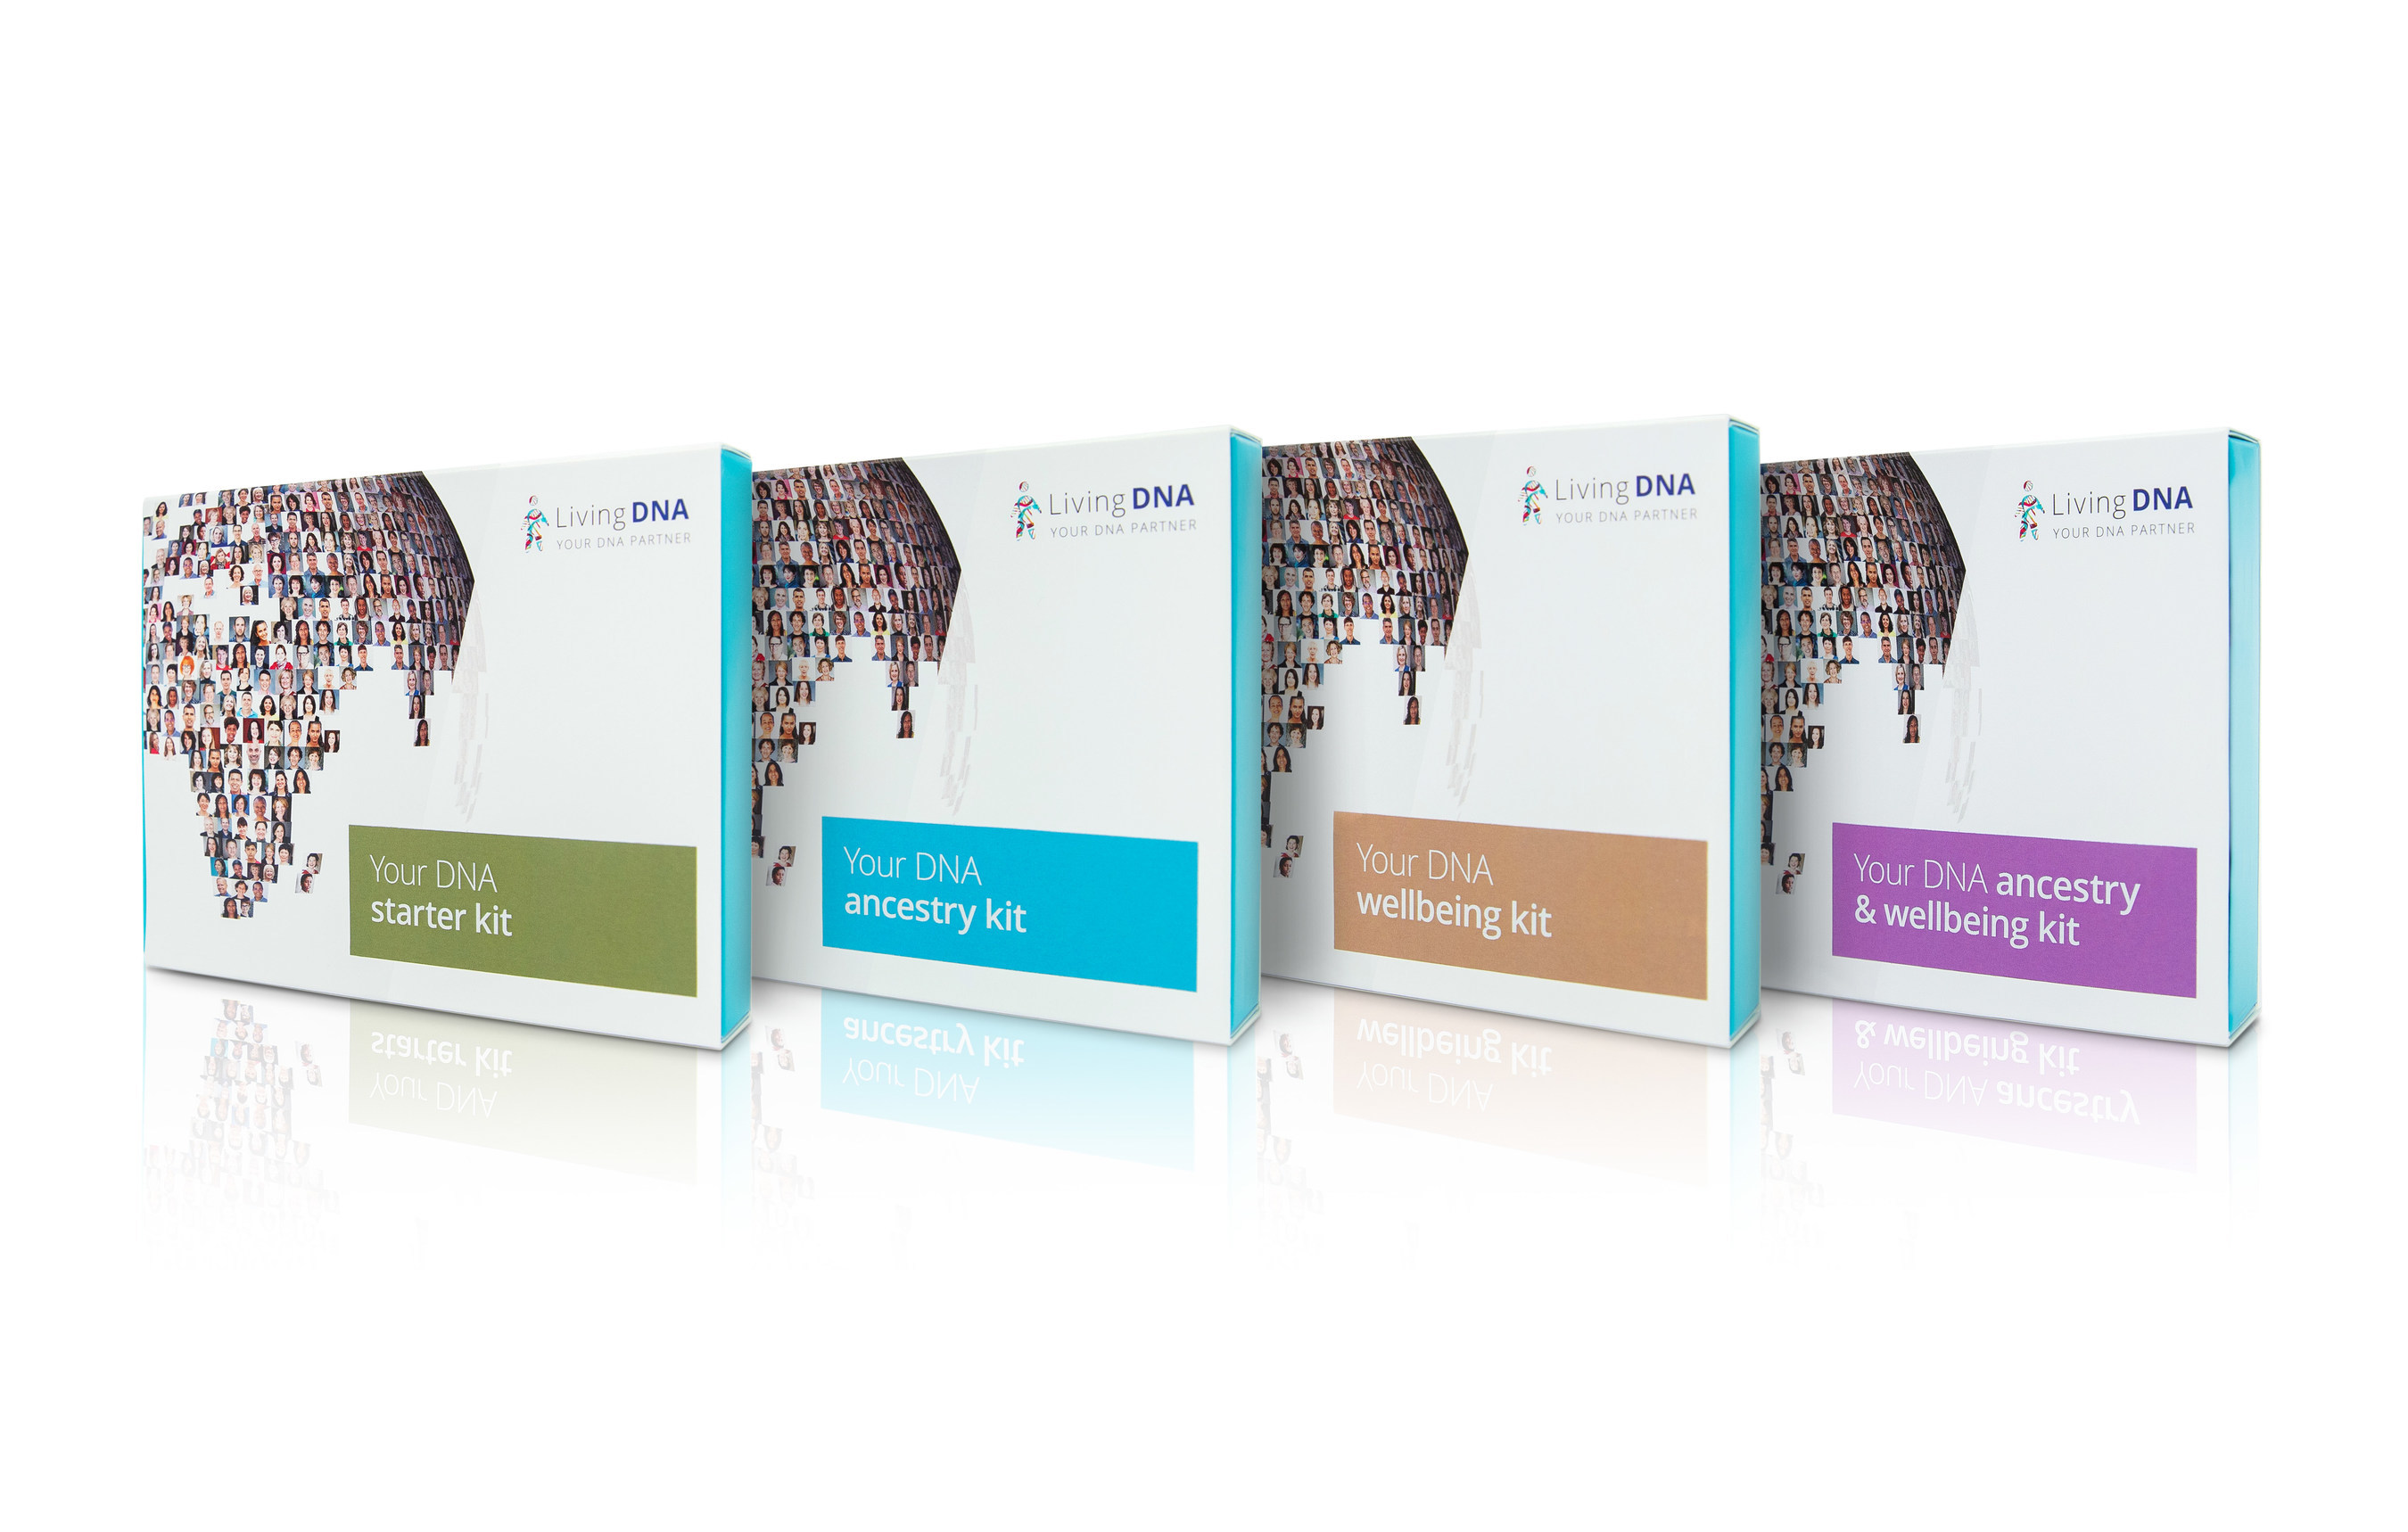 Living Dna Launches Genealogy And Wellbeing Dna Kit At Lowest Retail Price Point In Sector